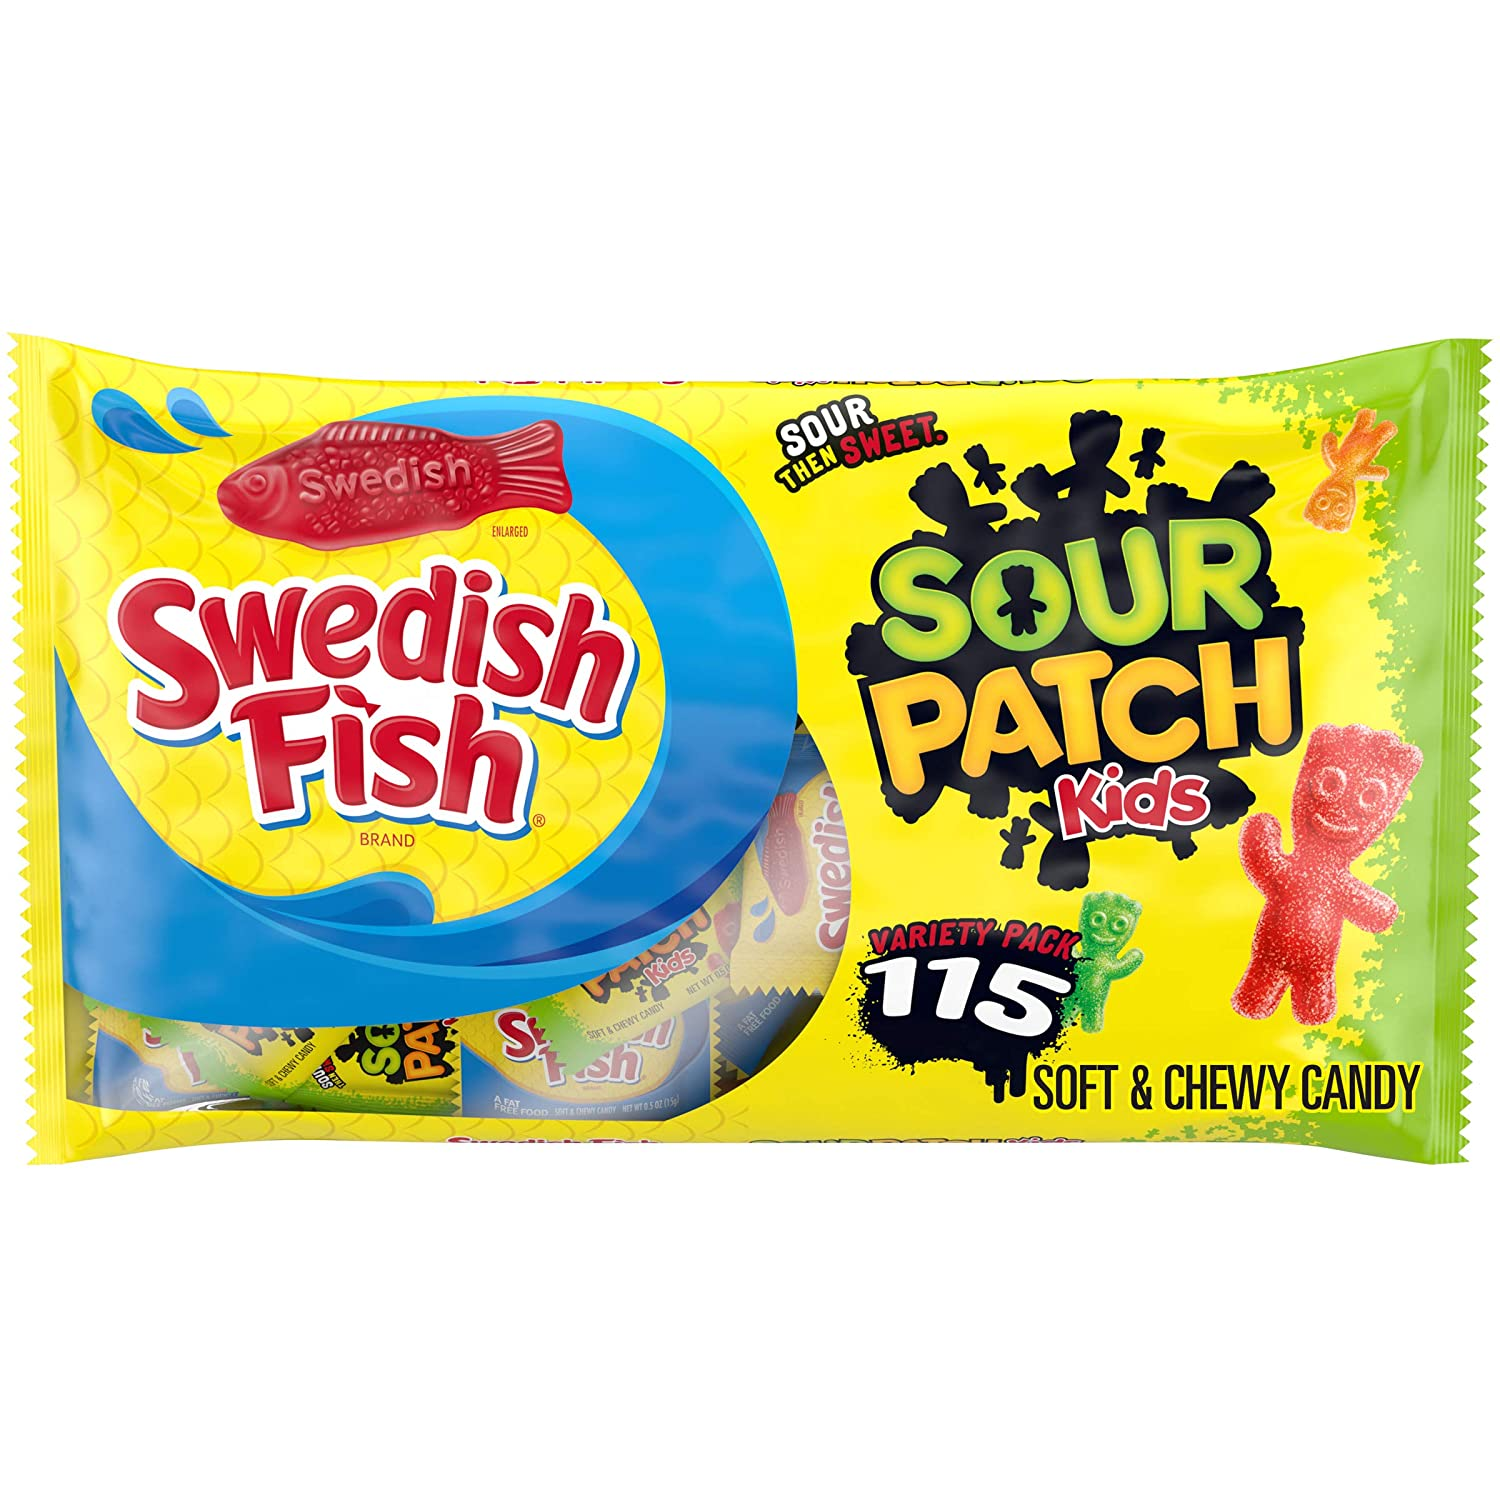 SOUR PATCH KIDS Candy and SWEDISH FISH Candy Halloween Candy Variety Pack, 1 - 115 Trick or Treat Snack Packs : Grocery & Gourmet Food